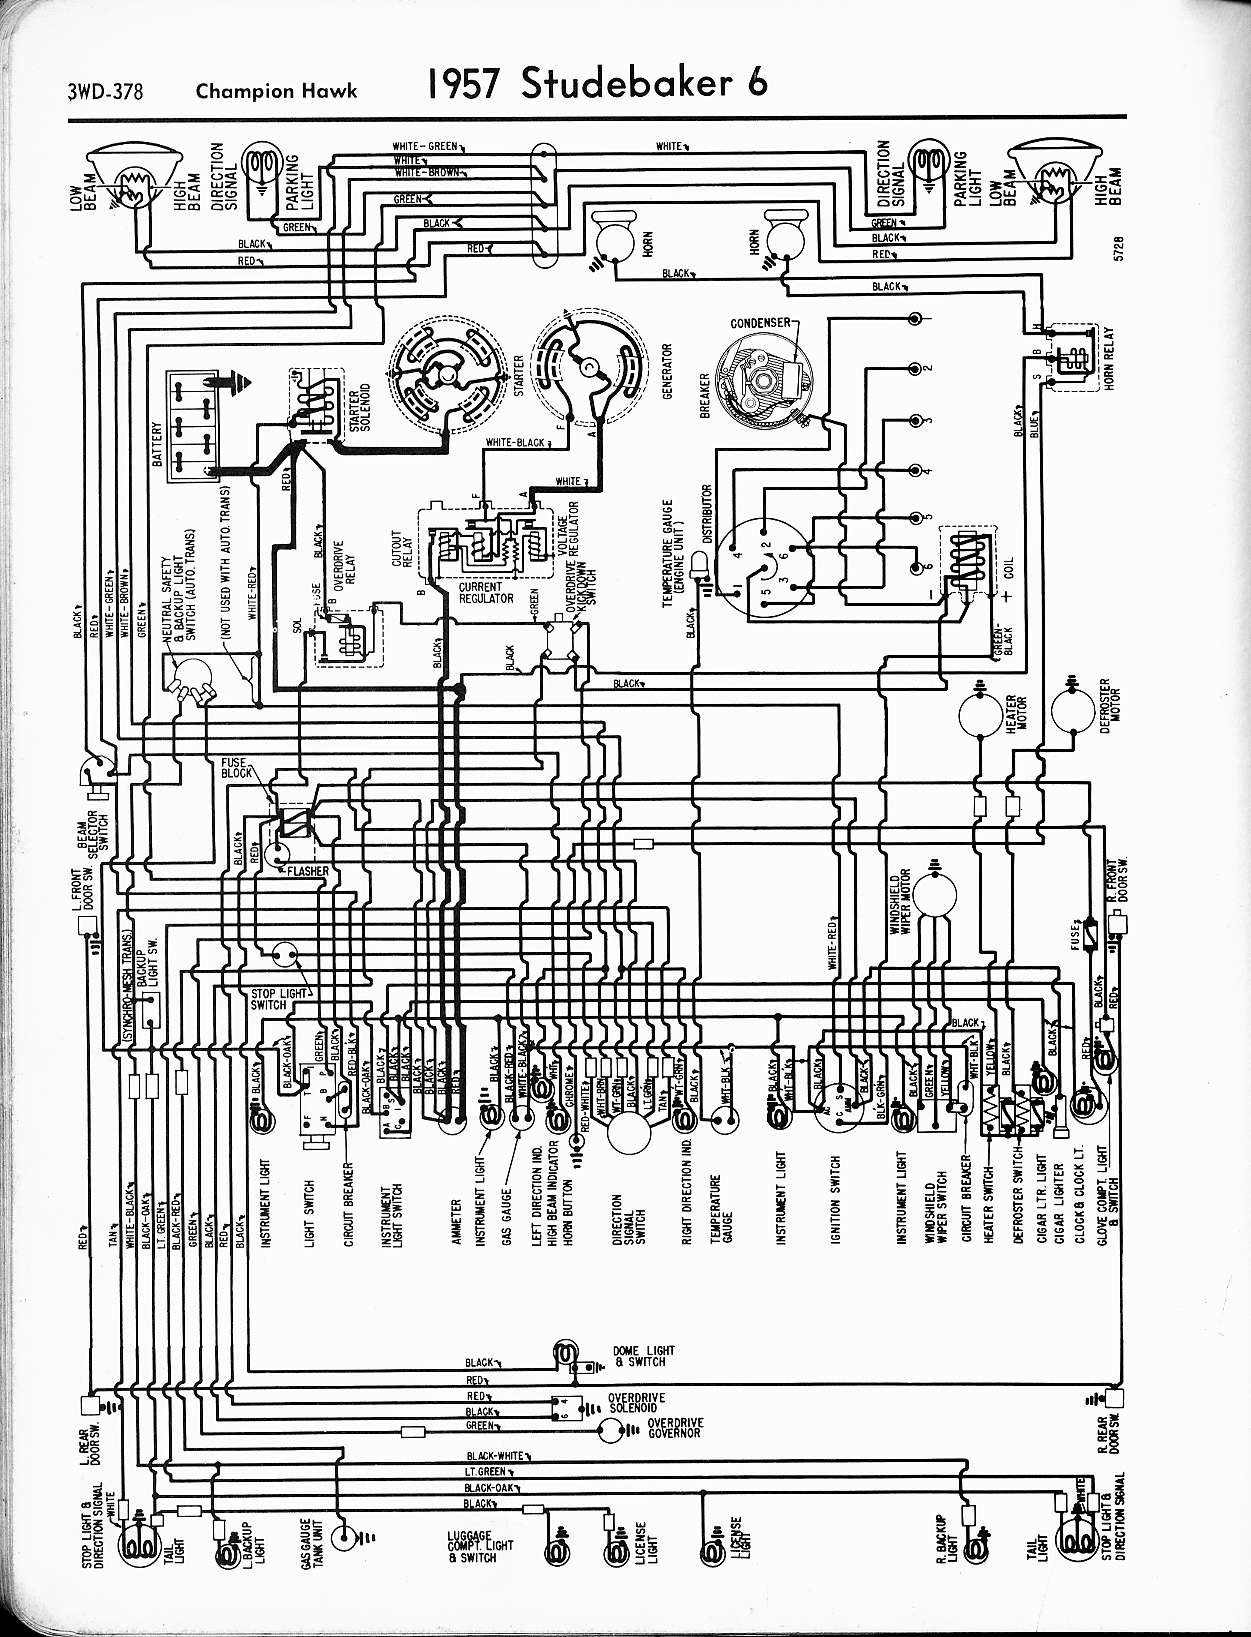 studebaker wiring diagrams the old car manual project studebaker wiring diagrams